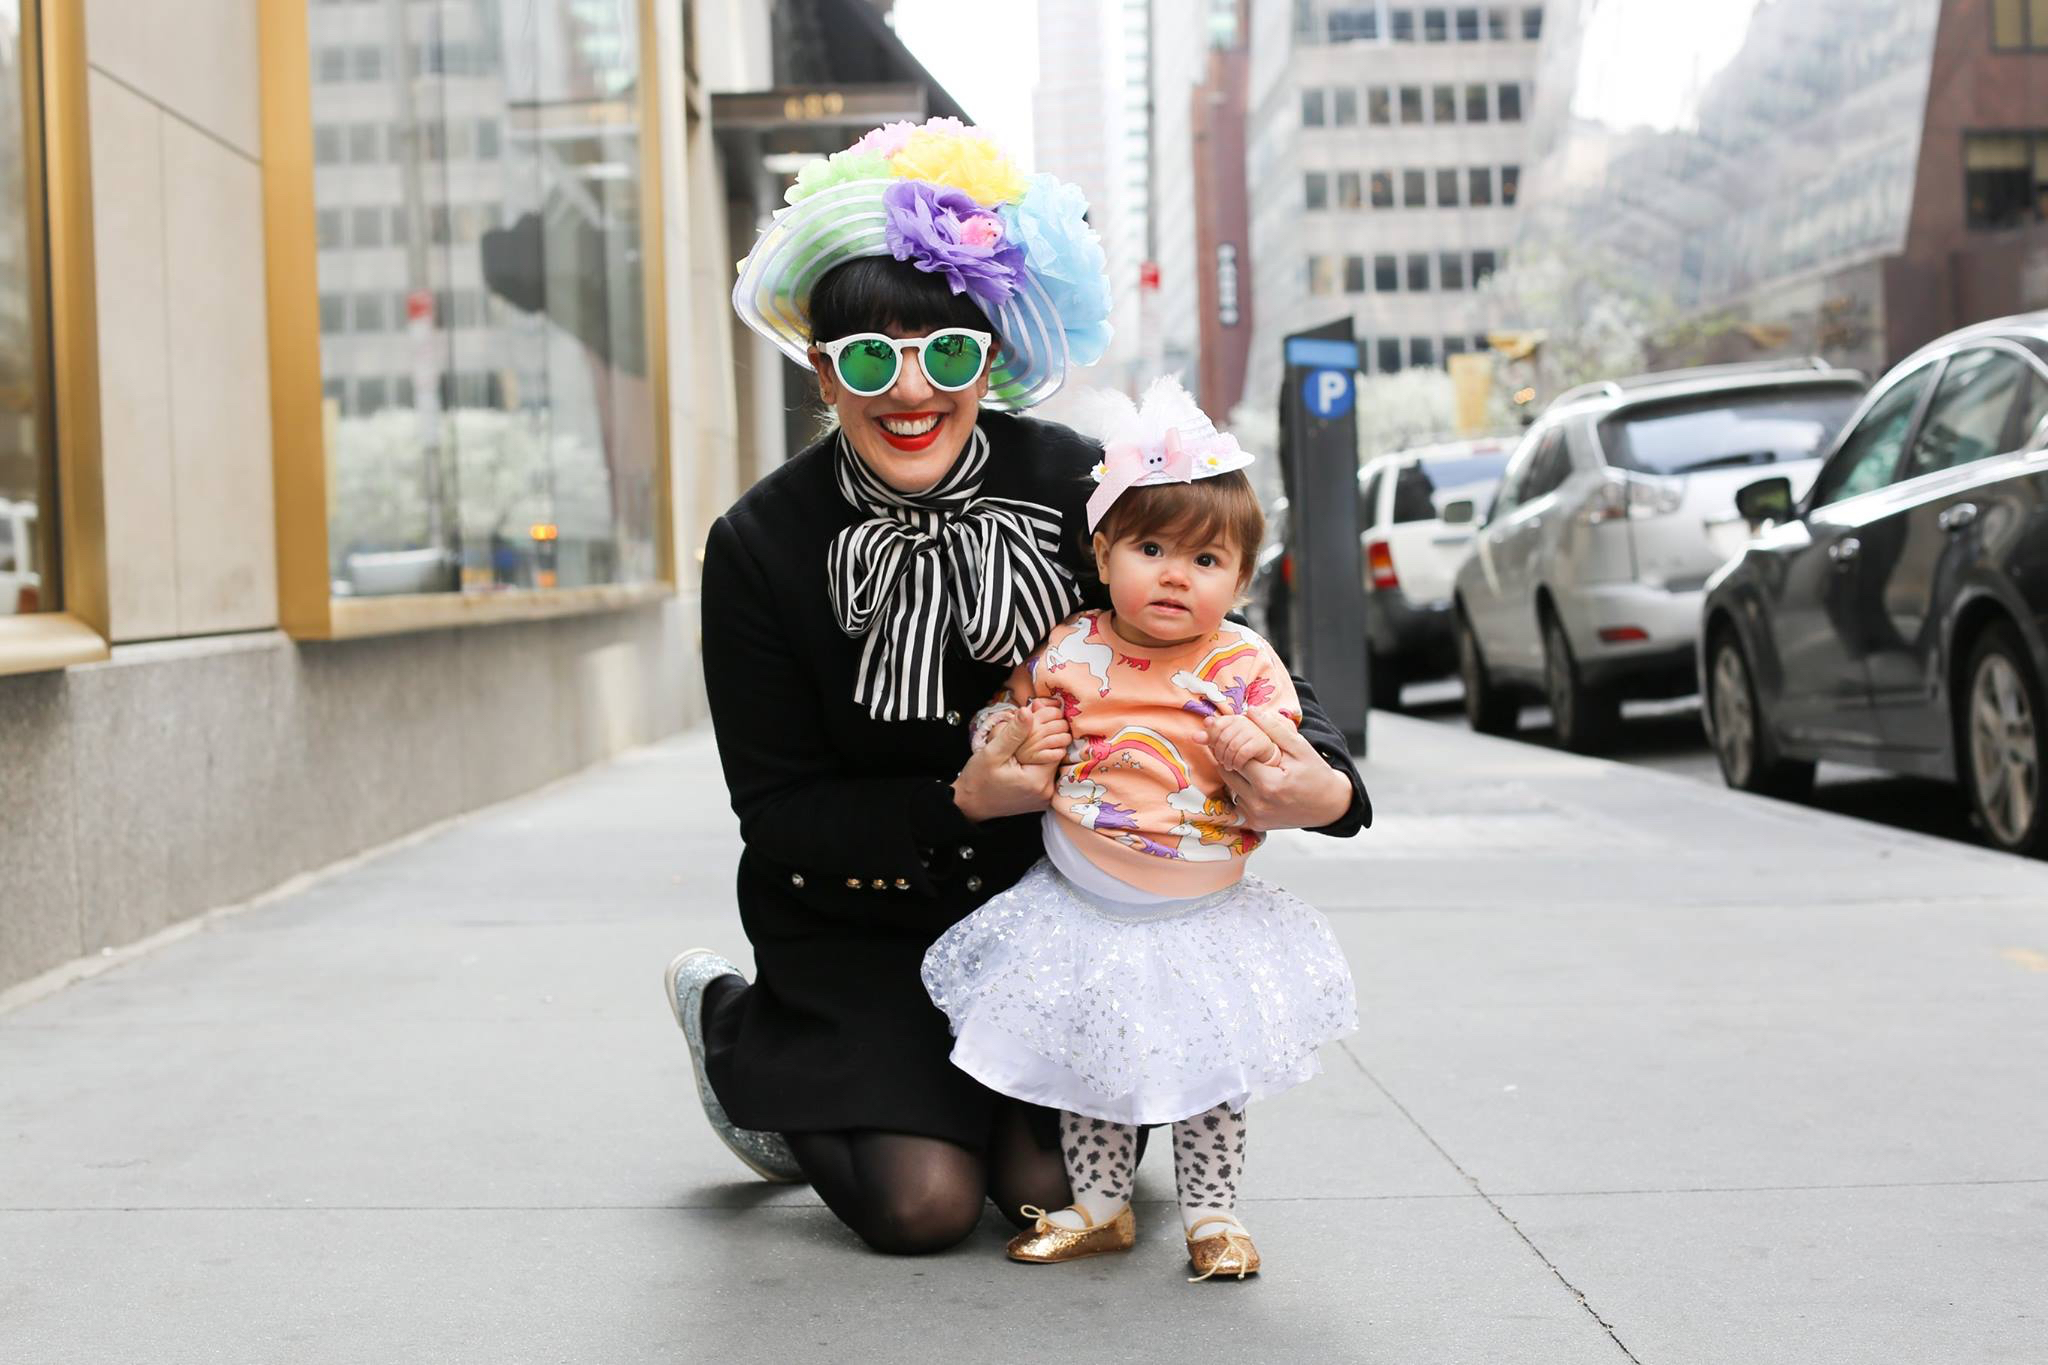 Photo taken by Brandon Stanton for Humans Of New York